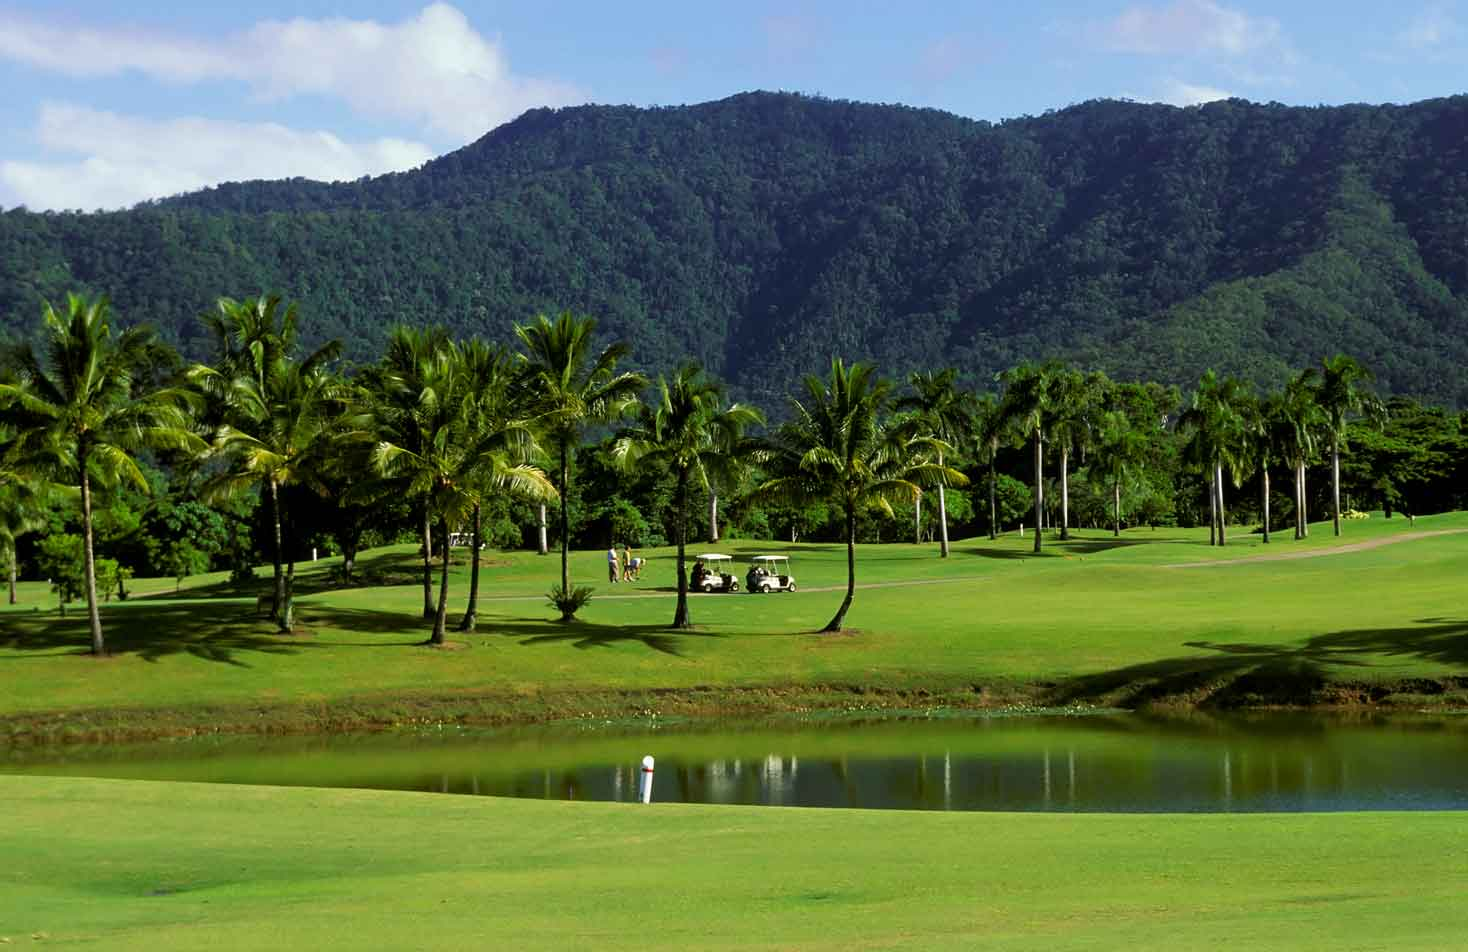 golf course cairns australia